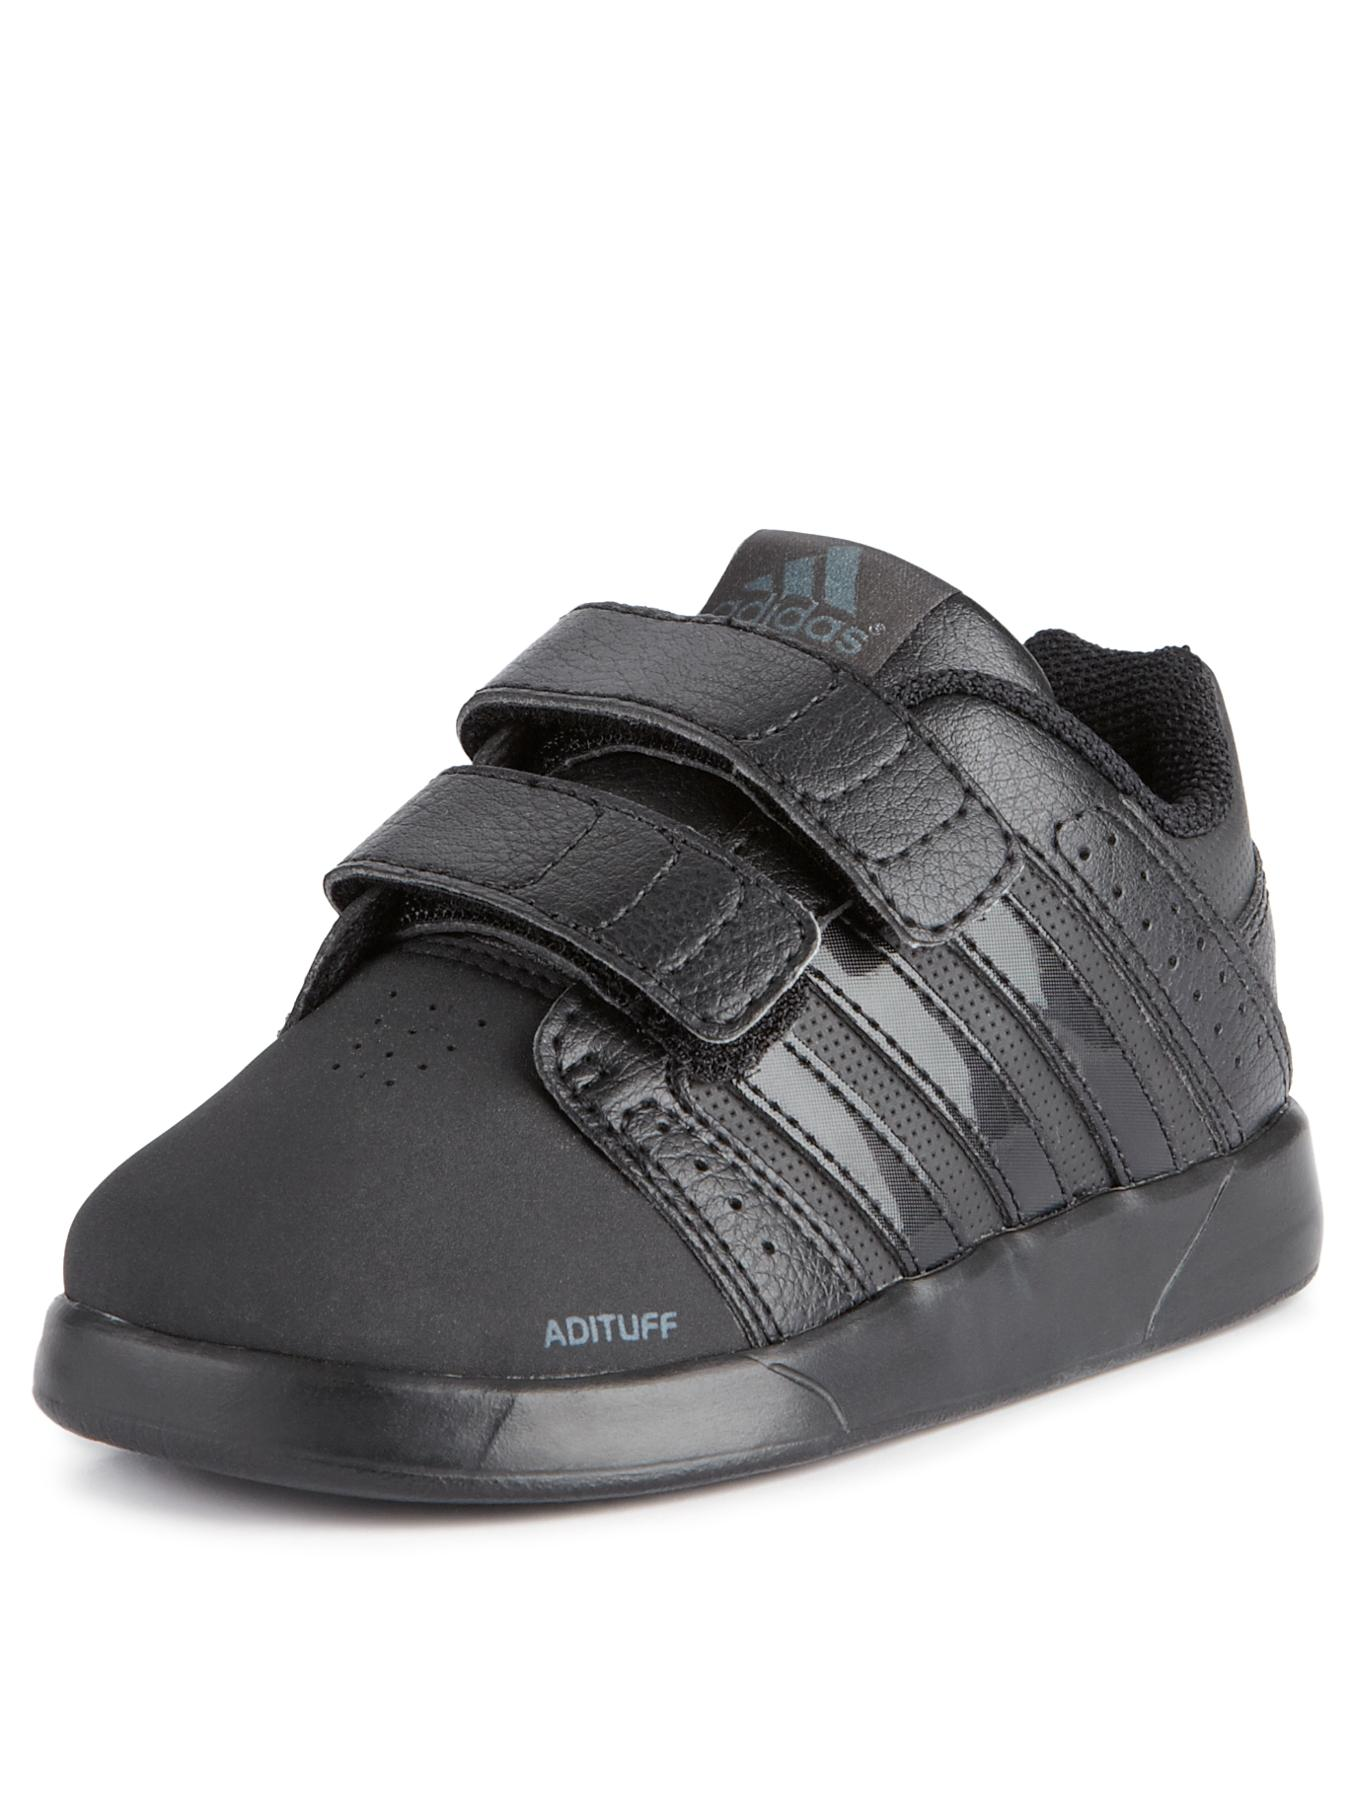 BTS Class 4 Cf Toddler Trainers - Black, Black